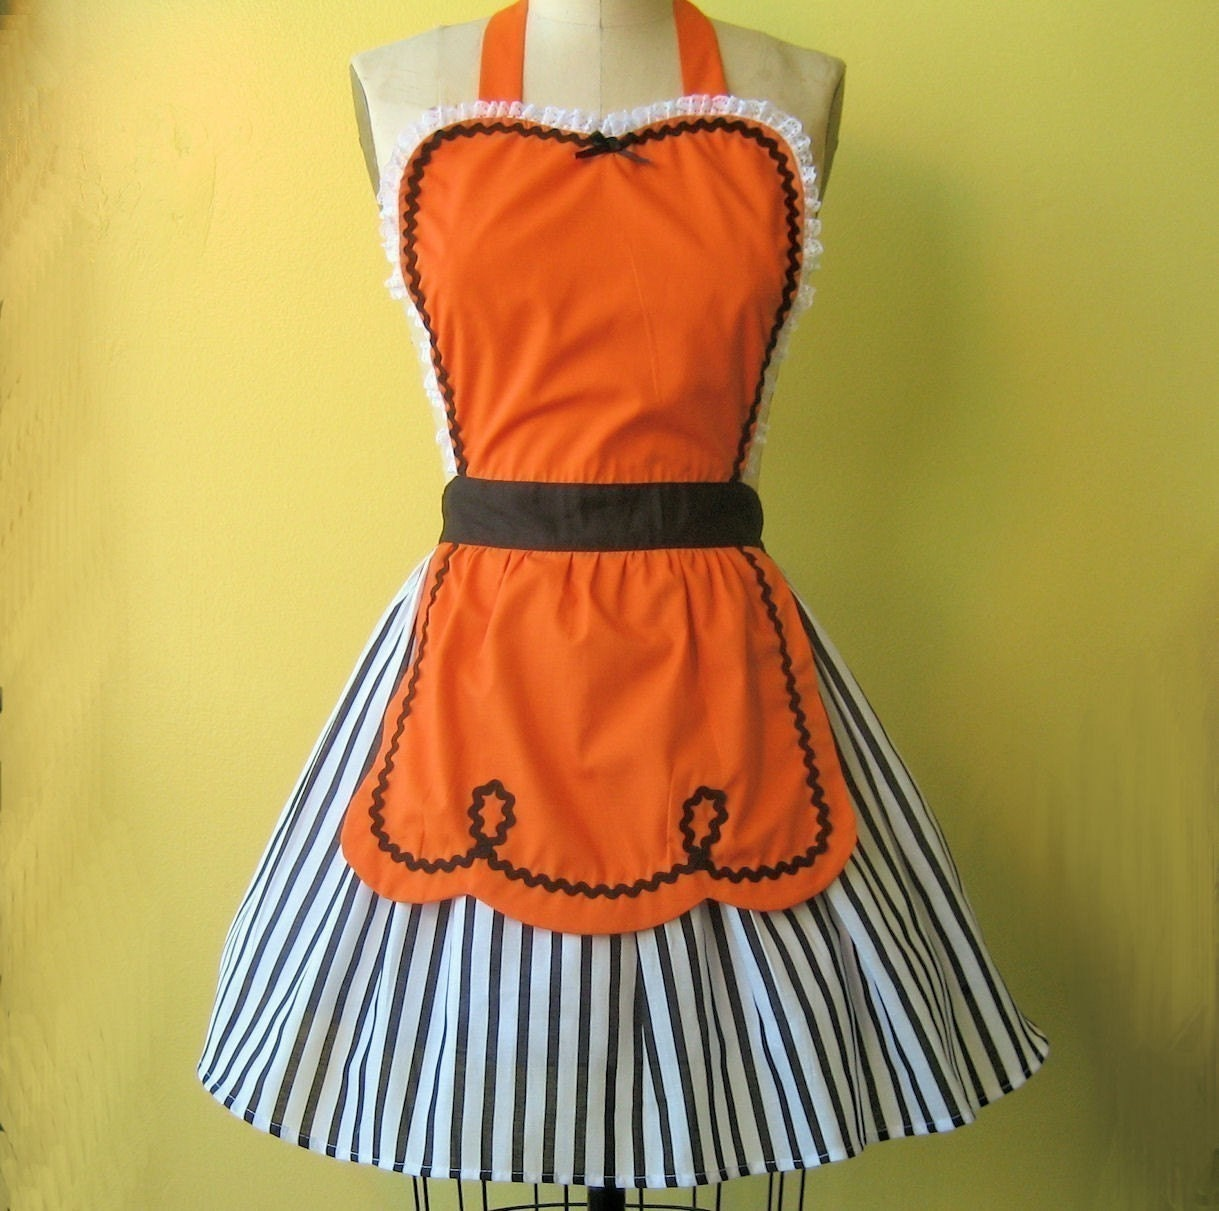 retro ORANGE and BLACK full apron 50s DINER WAITRESS ......  ice cream parlor with fifties details make a sexy hostess or bridal shower gift and is vintage inspired womens flirty Thanksgiving Harvest aprons